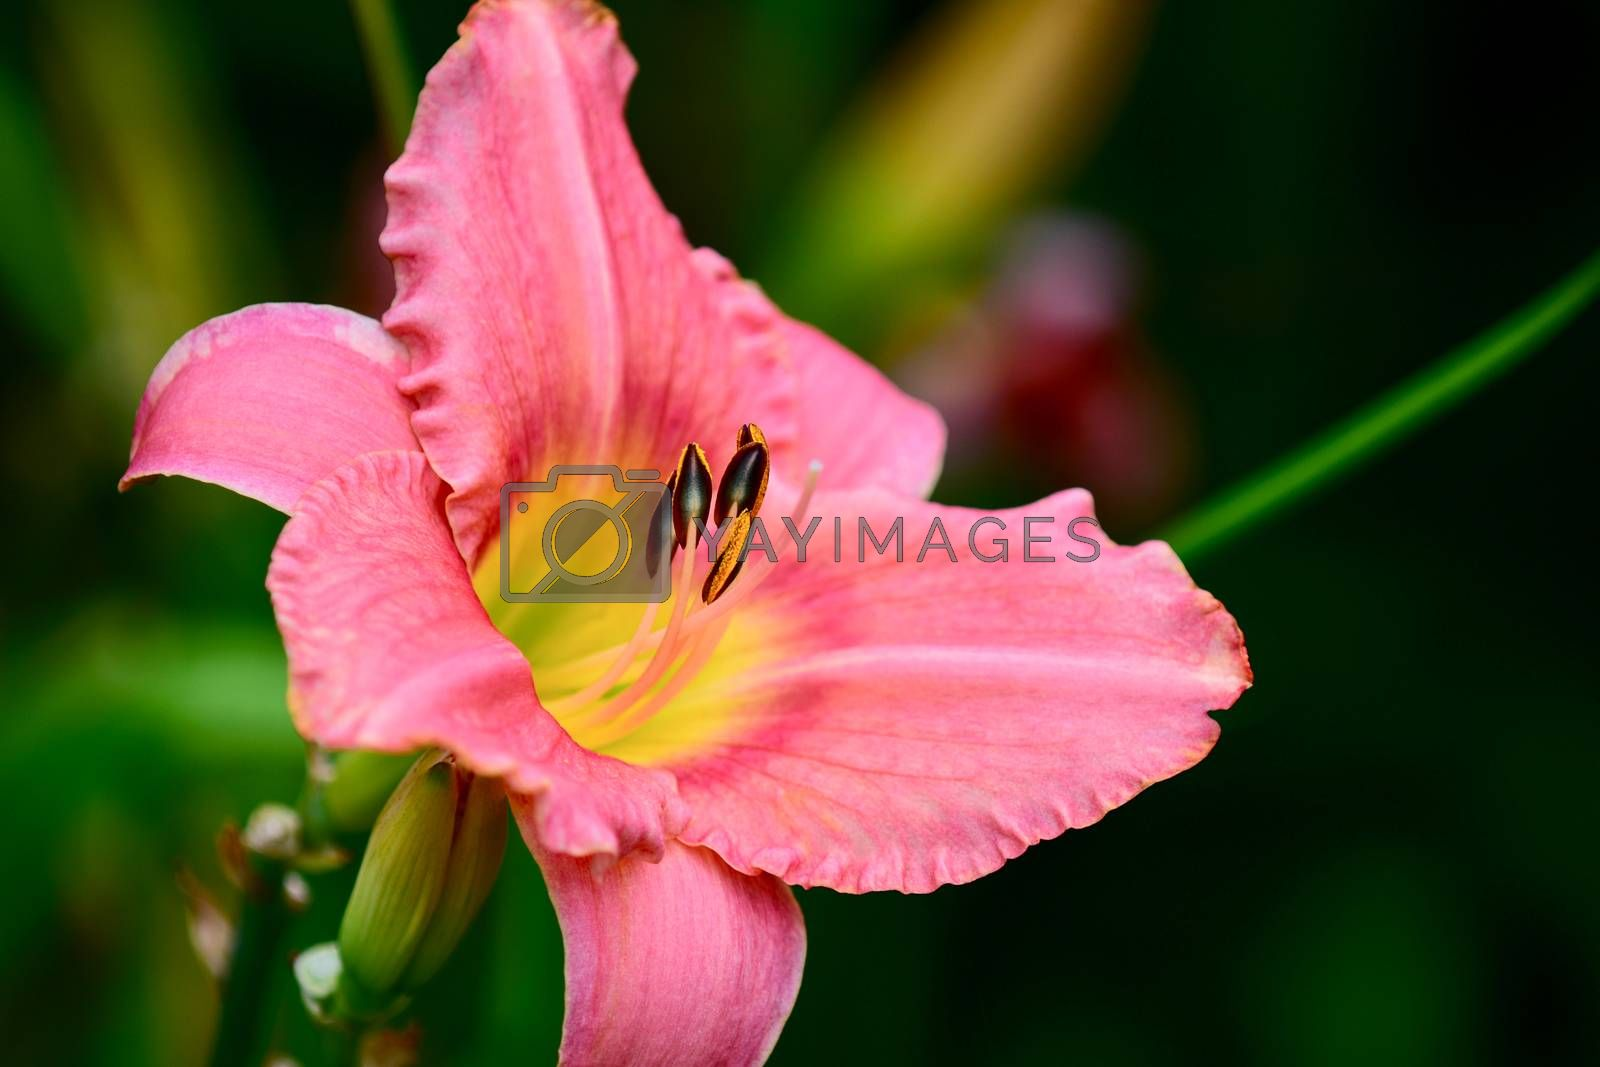 The daylily is a flowering plant in the genus Hemerocallis, a member of the family Asphodelaceae, subfamily Hemerocallidoideae. Despite the common name, it is not in fact a lily. Gardening enthusiasts and professional horticulturalists have long bred daylily species for their attractive flowers.